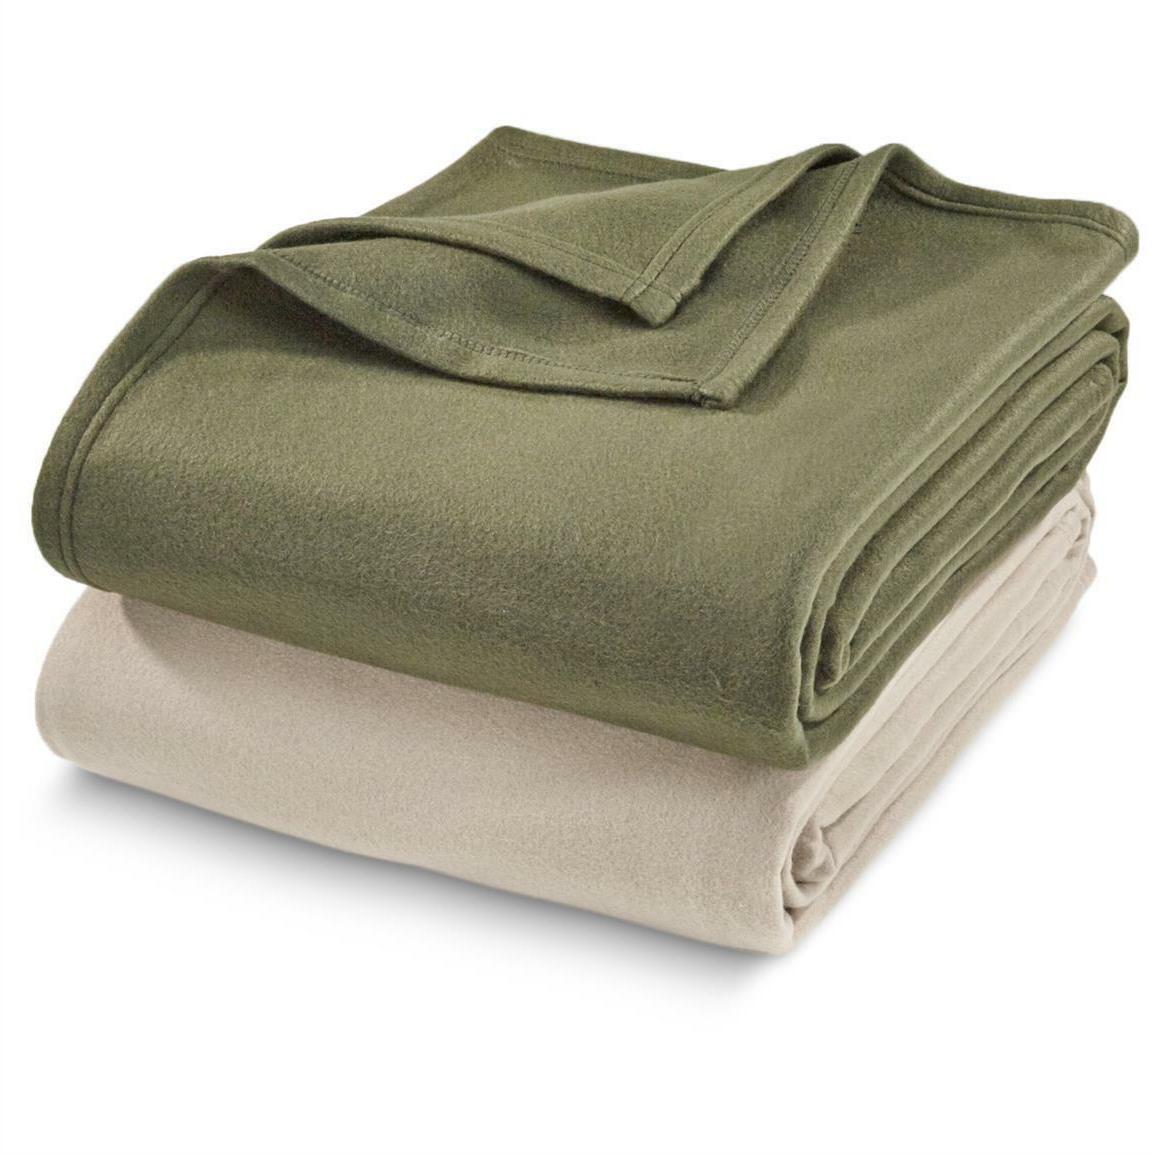 200 GSM Fleece Heavy Thick Large Blanket for Couch Car, Size